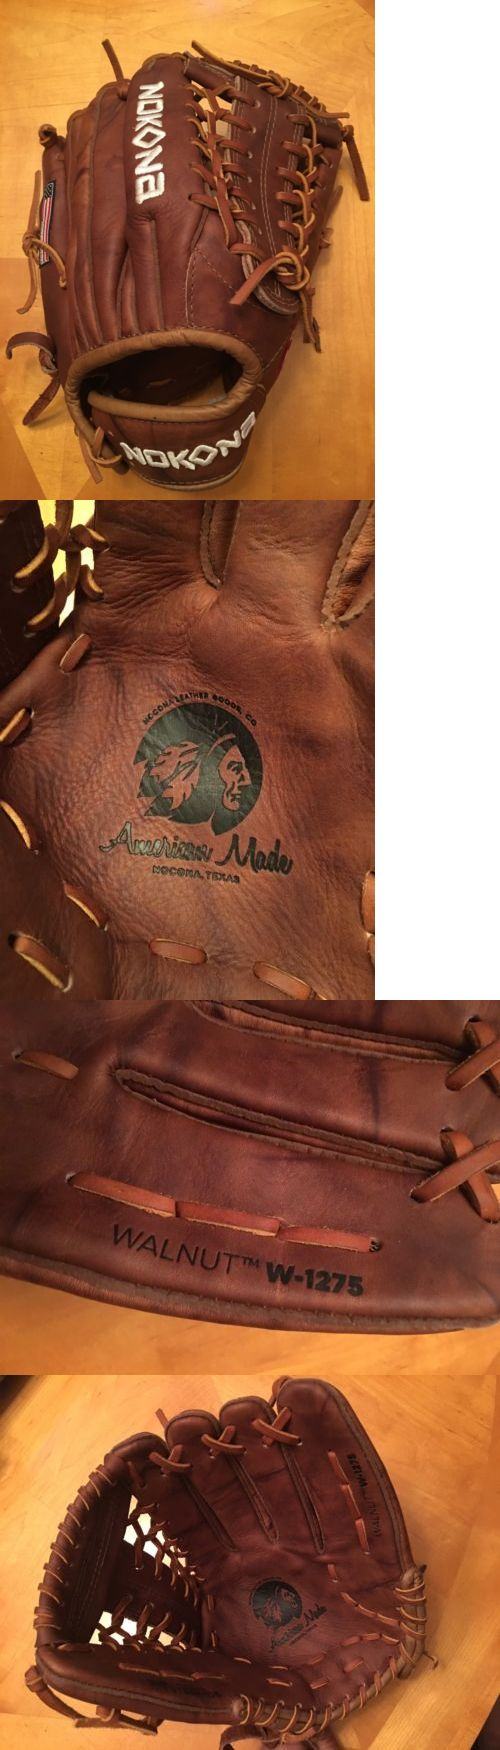 Gloves and Mitts 16030: New Nokona Walnut 12.75 Outfield Baseball Glove W-1275 Free Shipping -> BUY IT NOW ONLY: $169.95 on eBay!